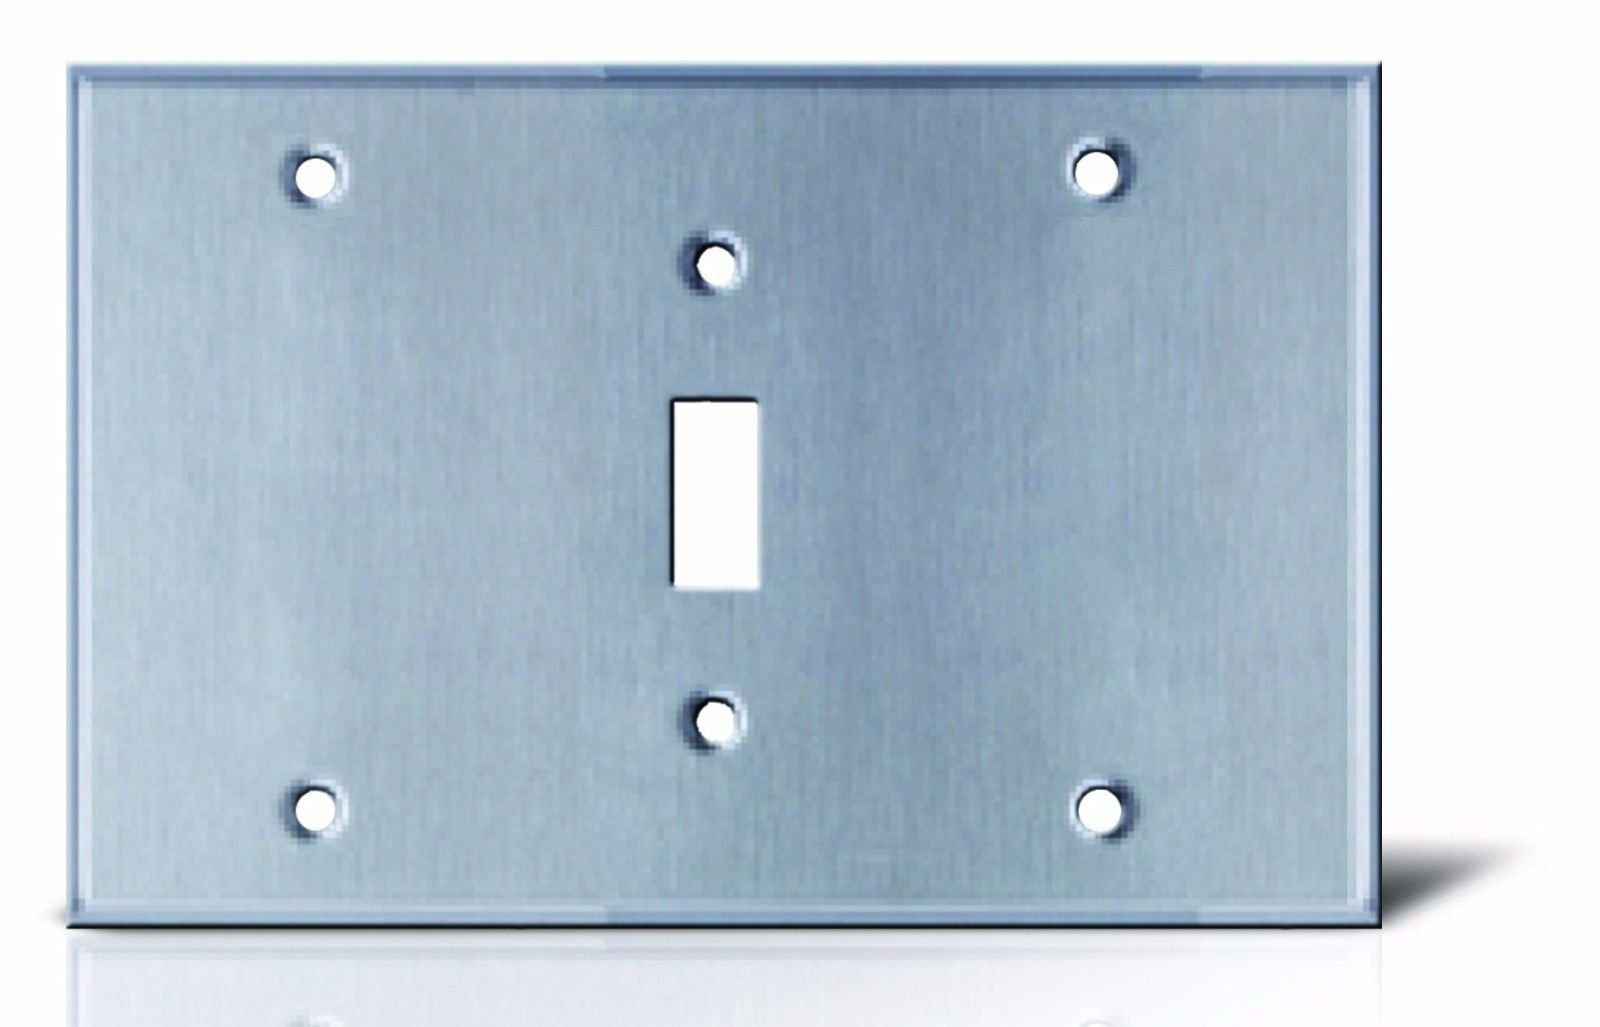 3 GANG WALL COVER PLATE COMBINATION DECORA GFCI SWITCH DUPLEX PLUG BLANK STAILNLESS STEEL (6: BLANK - SWITCH - BLANK)